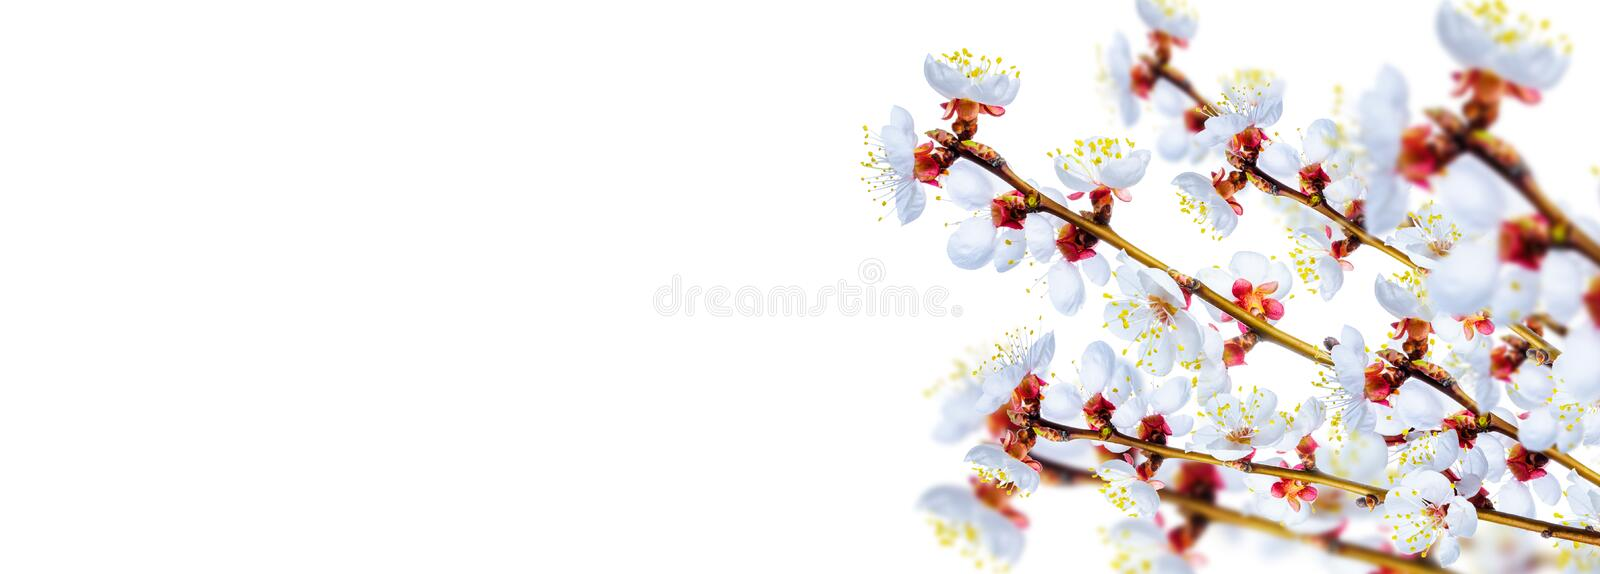 Download Spring blossom stock image. Image of selective, life - 39513151